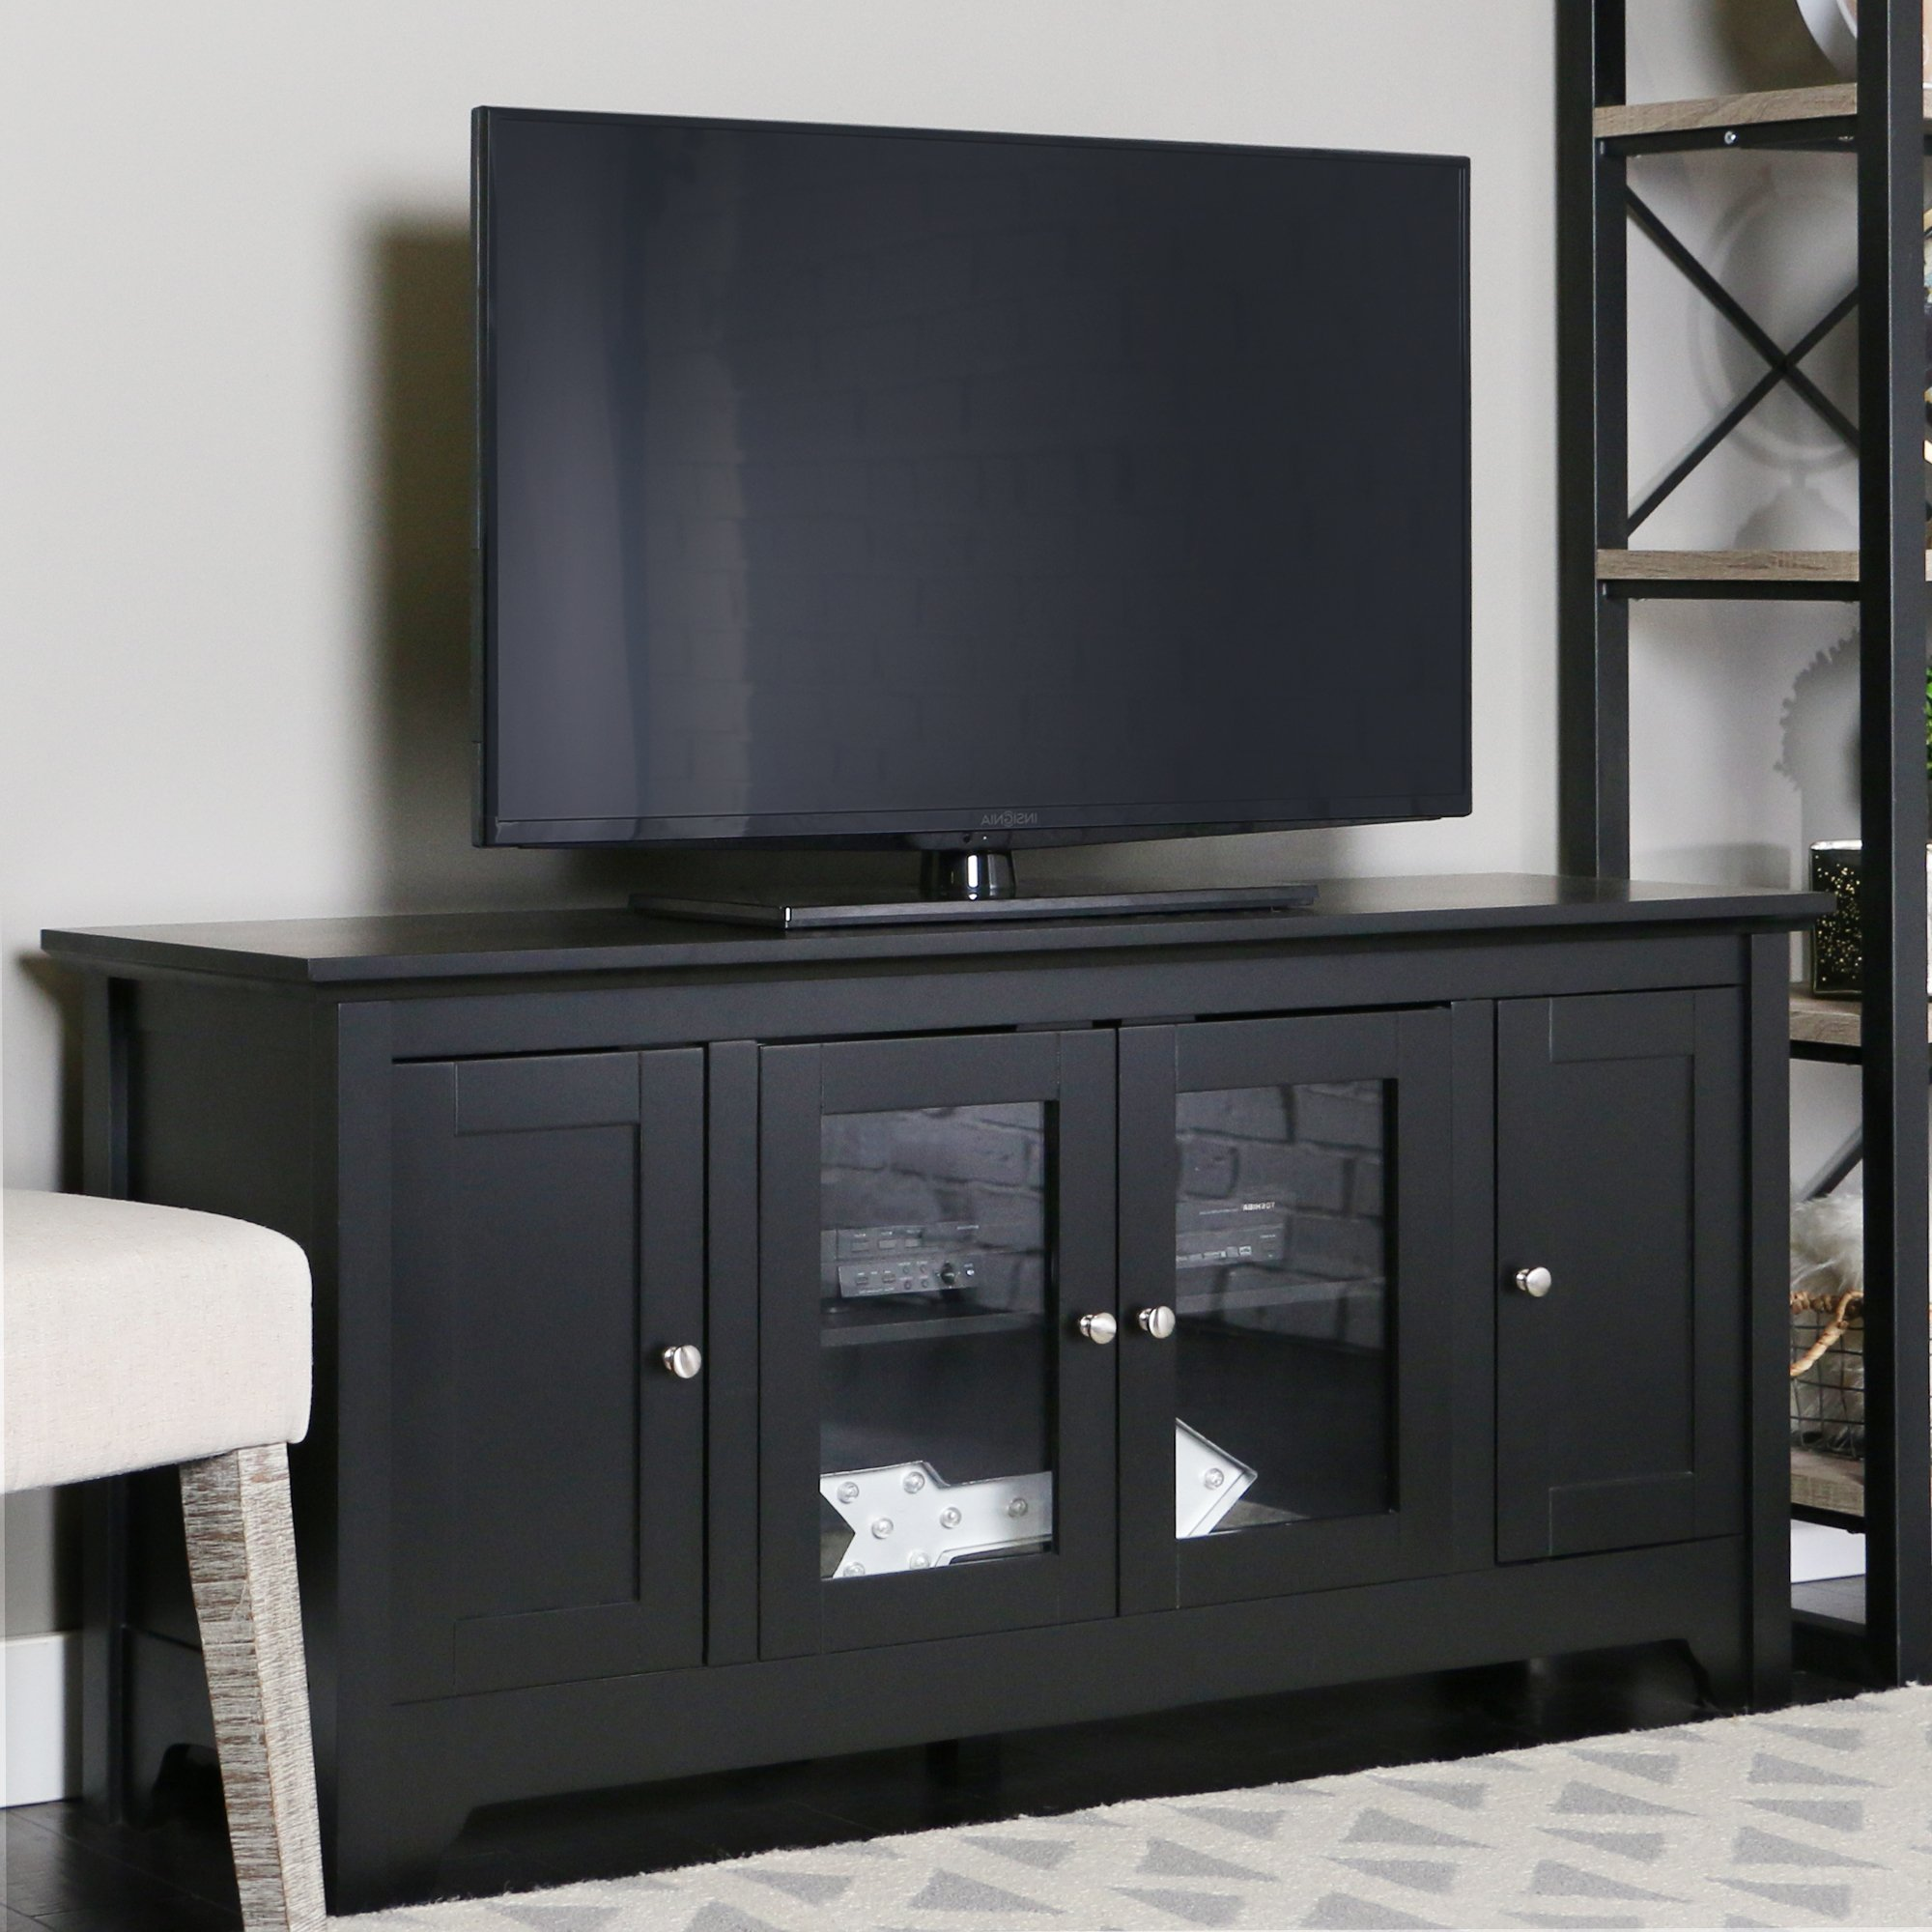 Walker Edison 53'' Wood TV Stand Console with Storage, Black